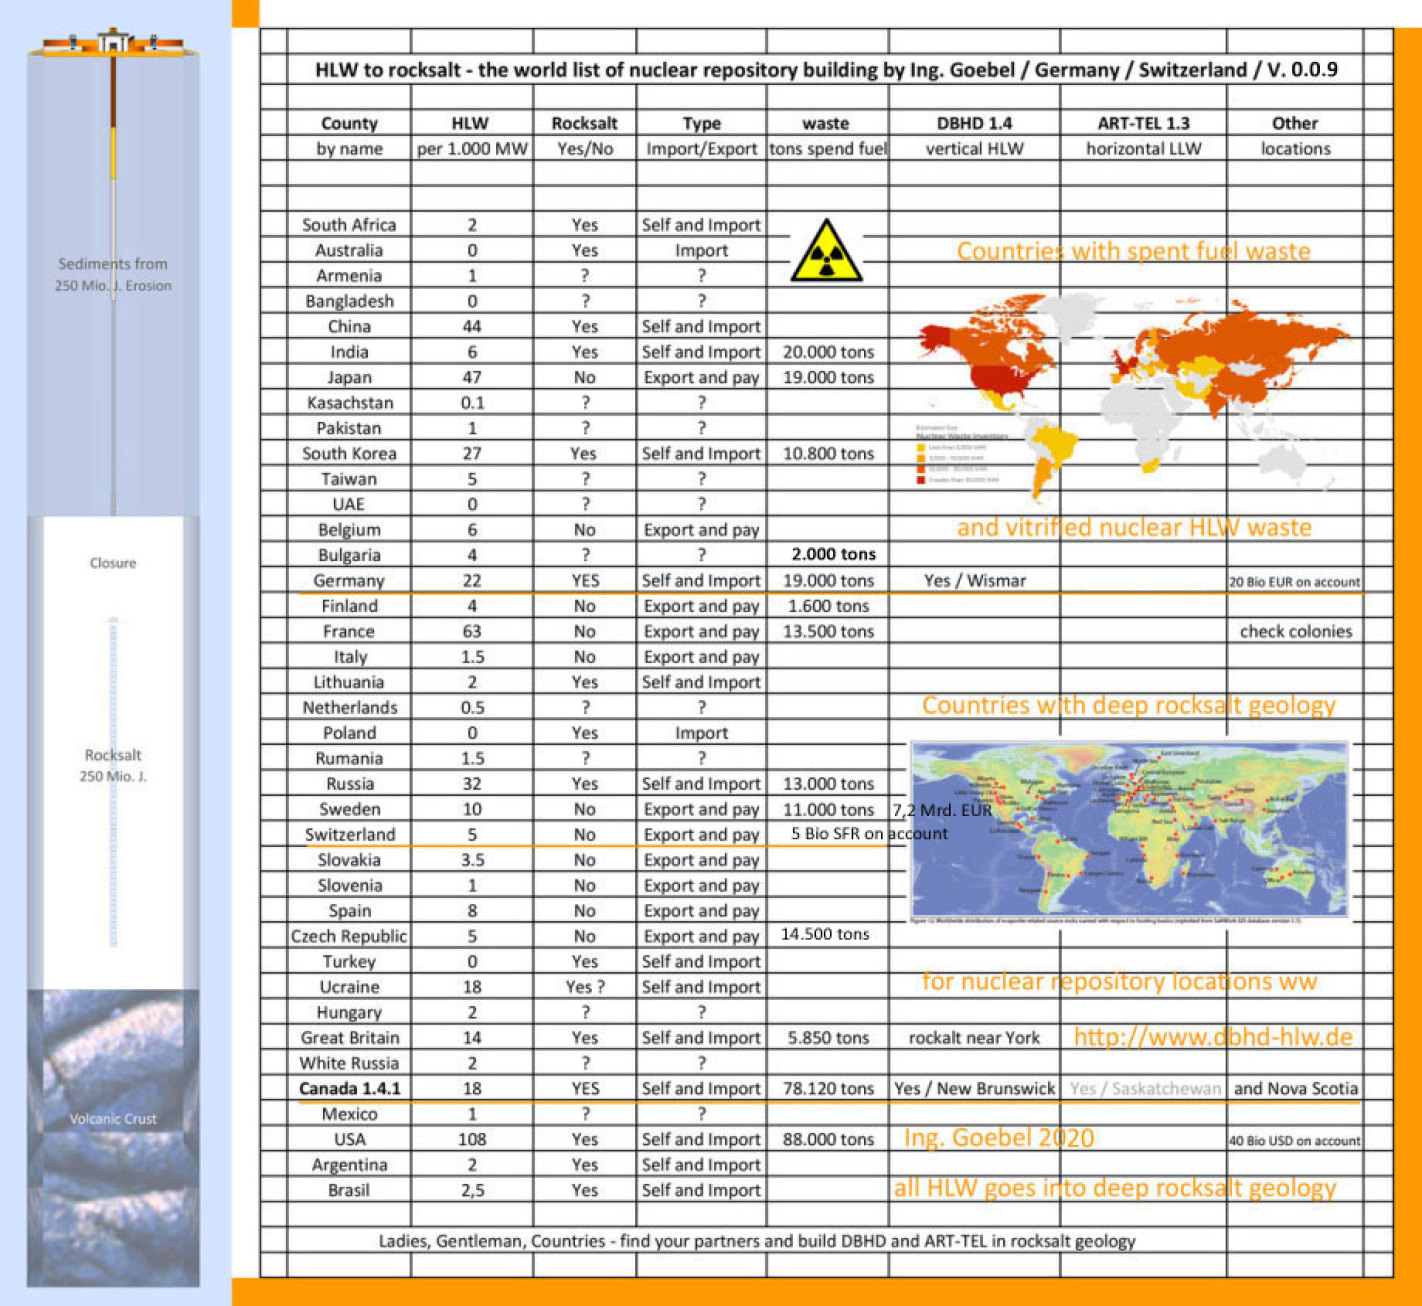 Pic_HLW_to_Rocksalt_World_List_World_nuclear_repositories_in_deep_rocksalt_Ing_Goebel